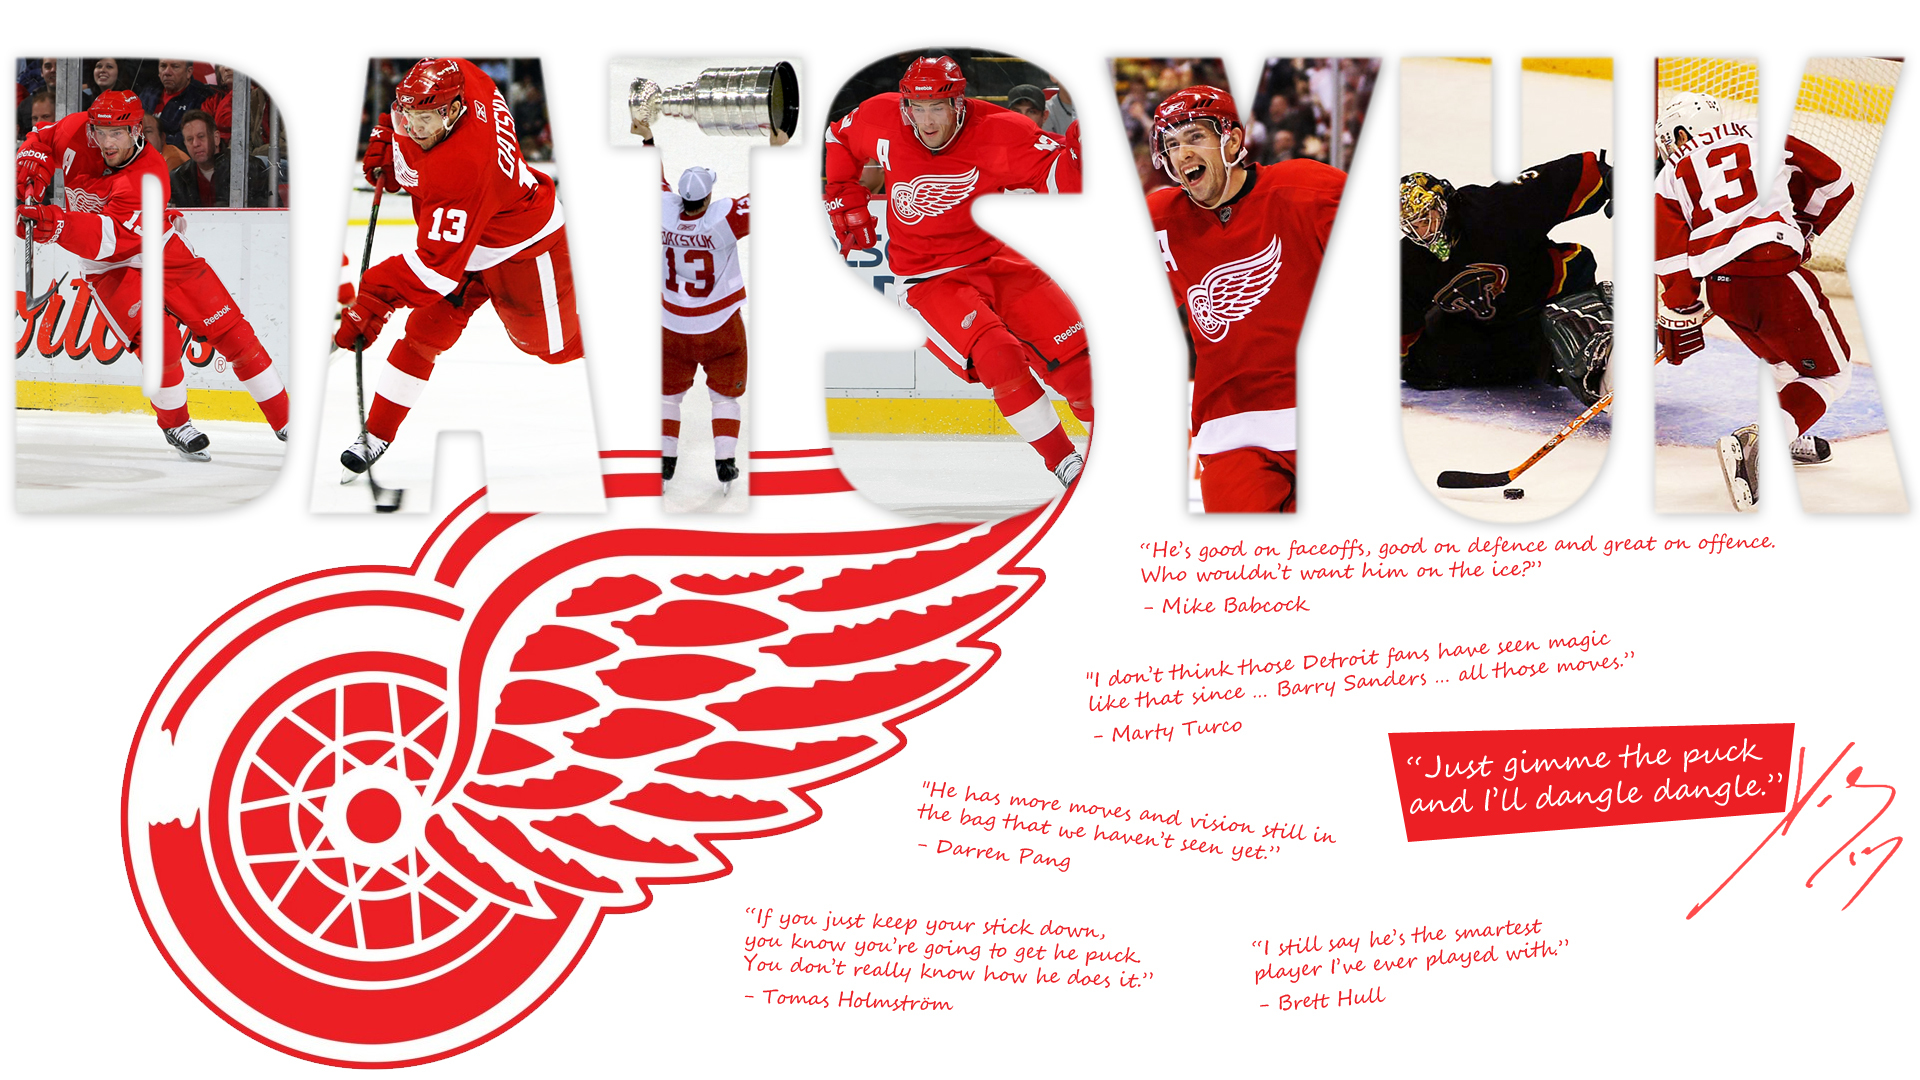 Detroit Pavel Datsyuk wallpapers and images   wallpapers pictures 1920x1080